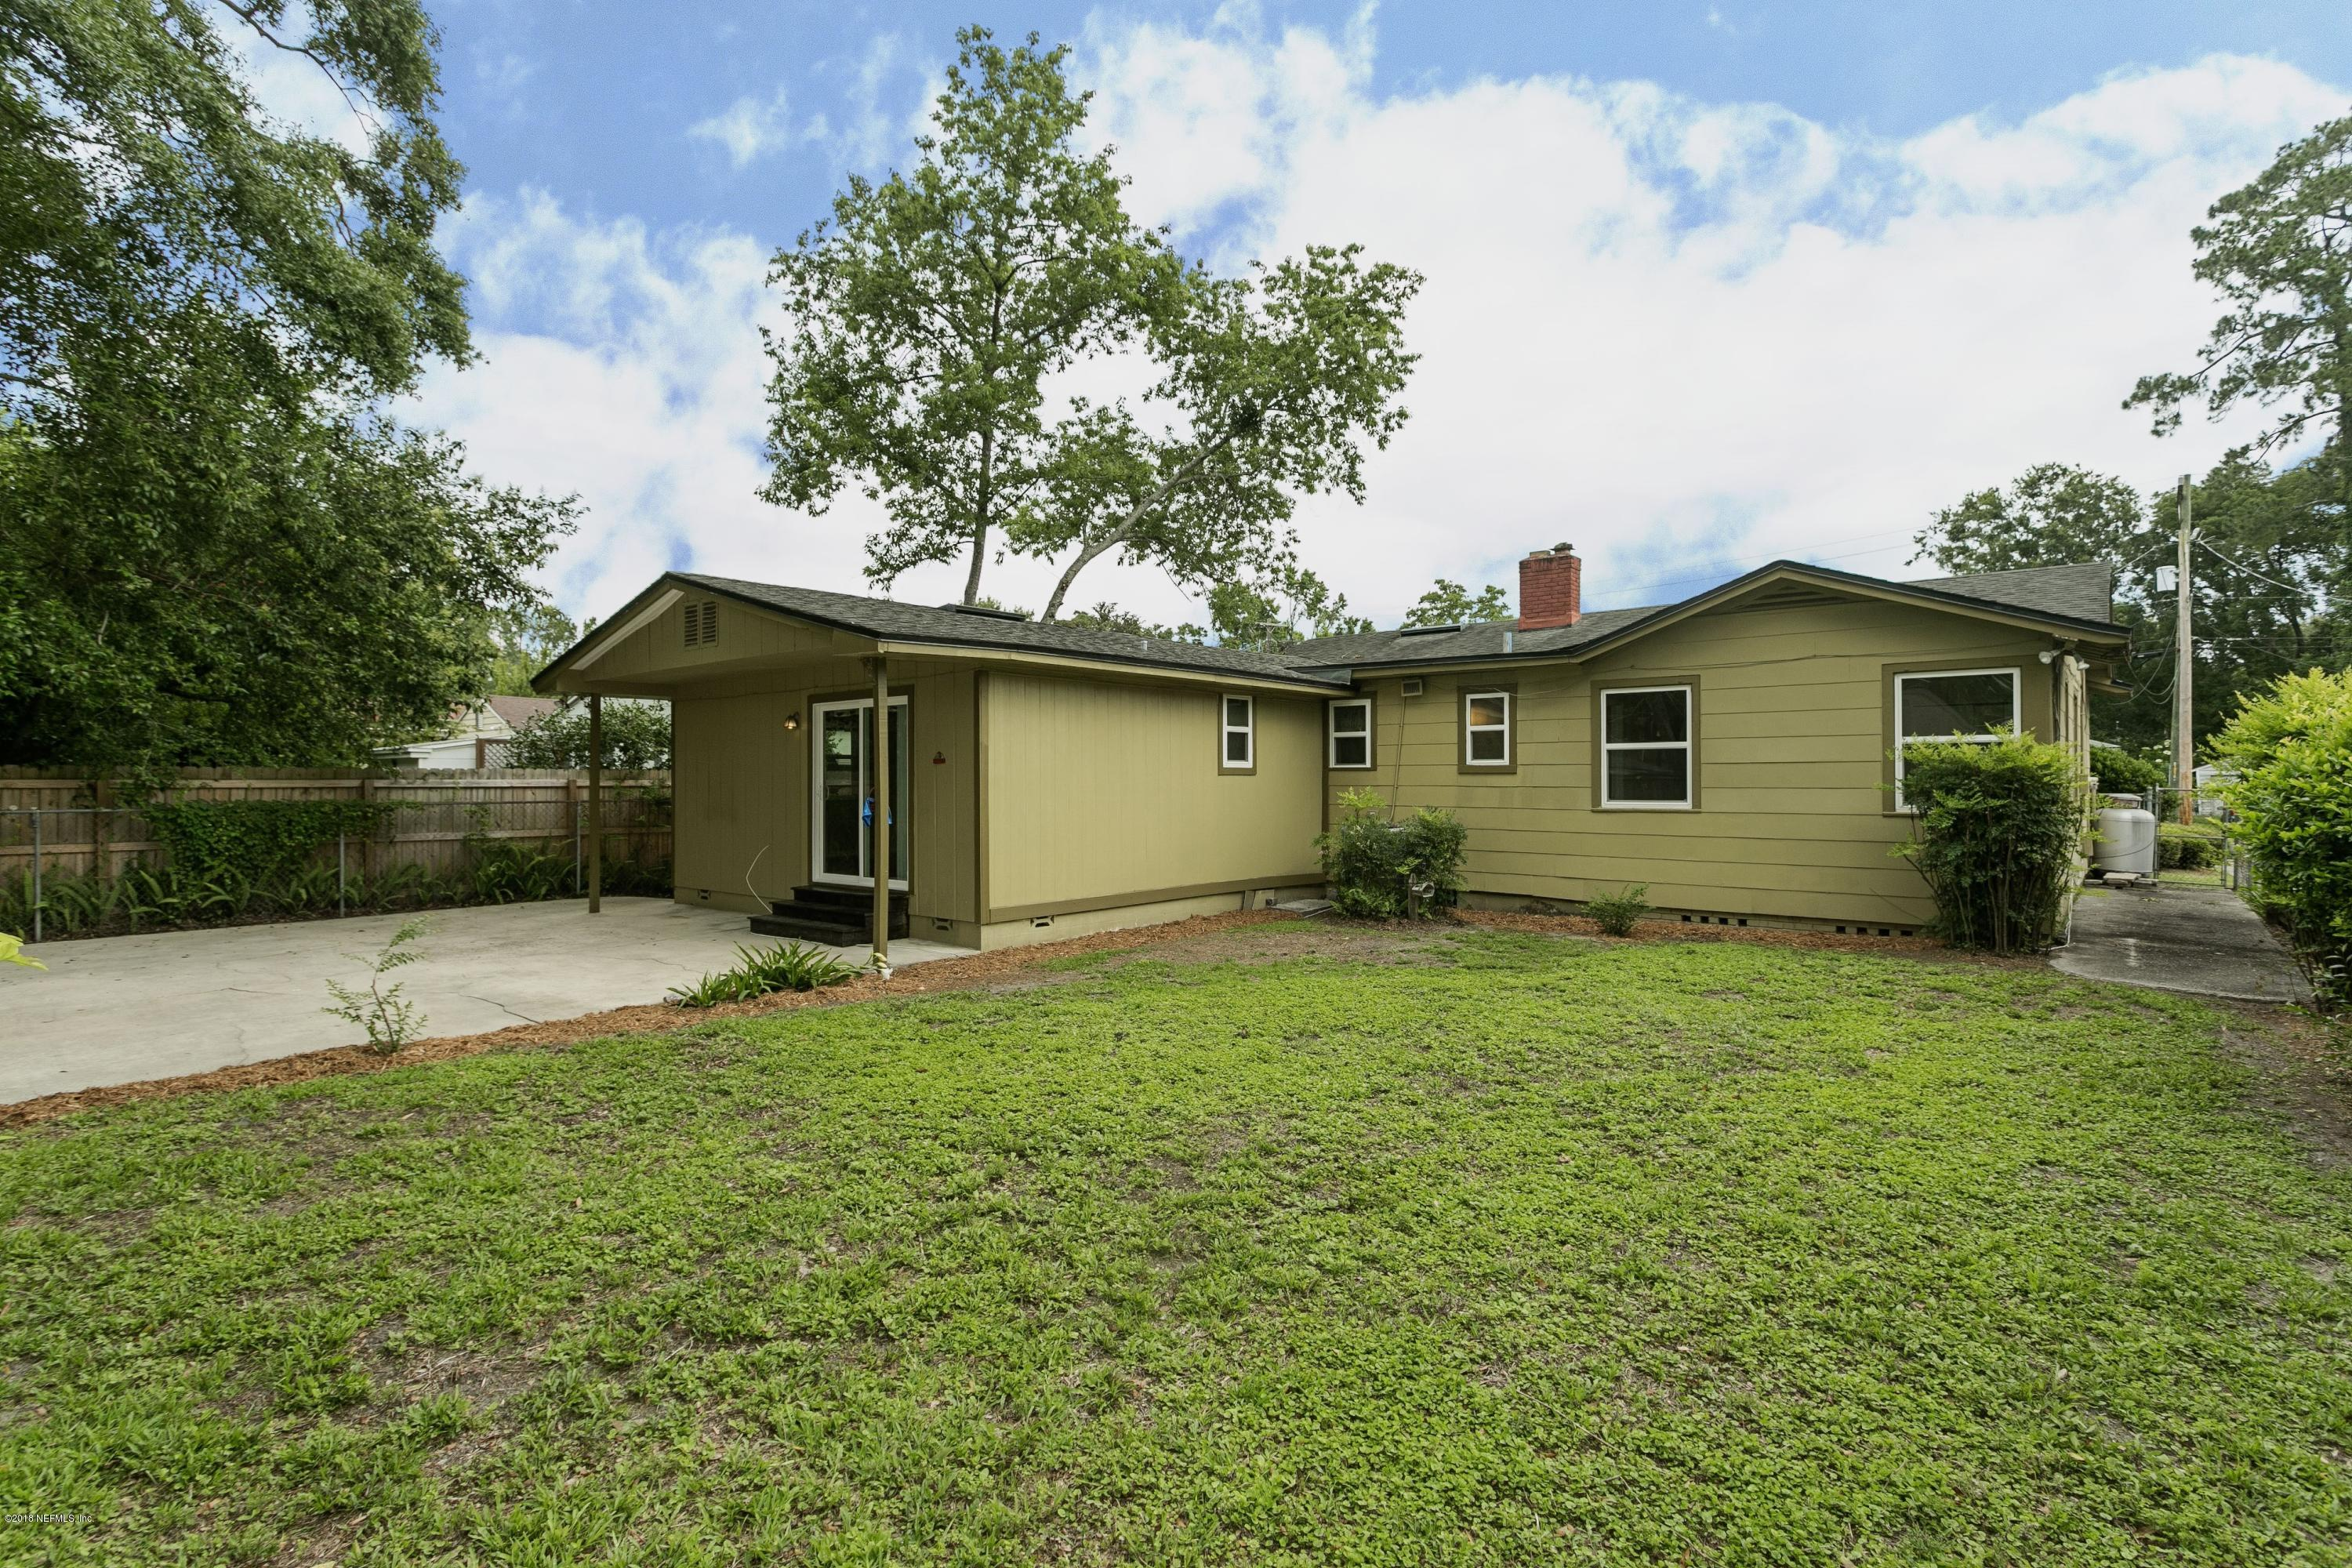 1526 PARRISH, JACKSONVILLE, FLORIDA 32205, 3 Bedrooms Bedrooms, ,2 BathroomsBathrooms,Residential - single family,For sale,PARRISH,940804